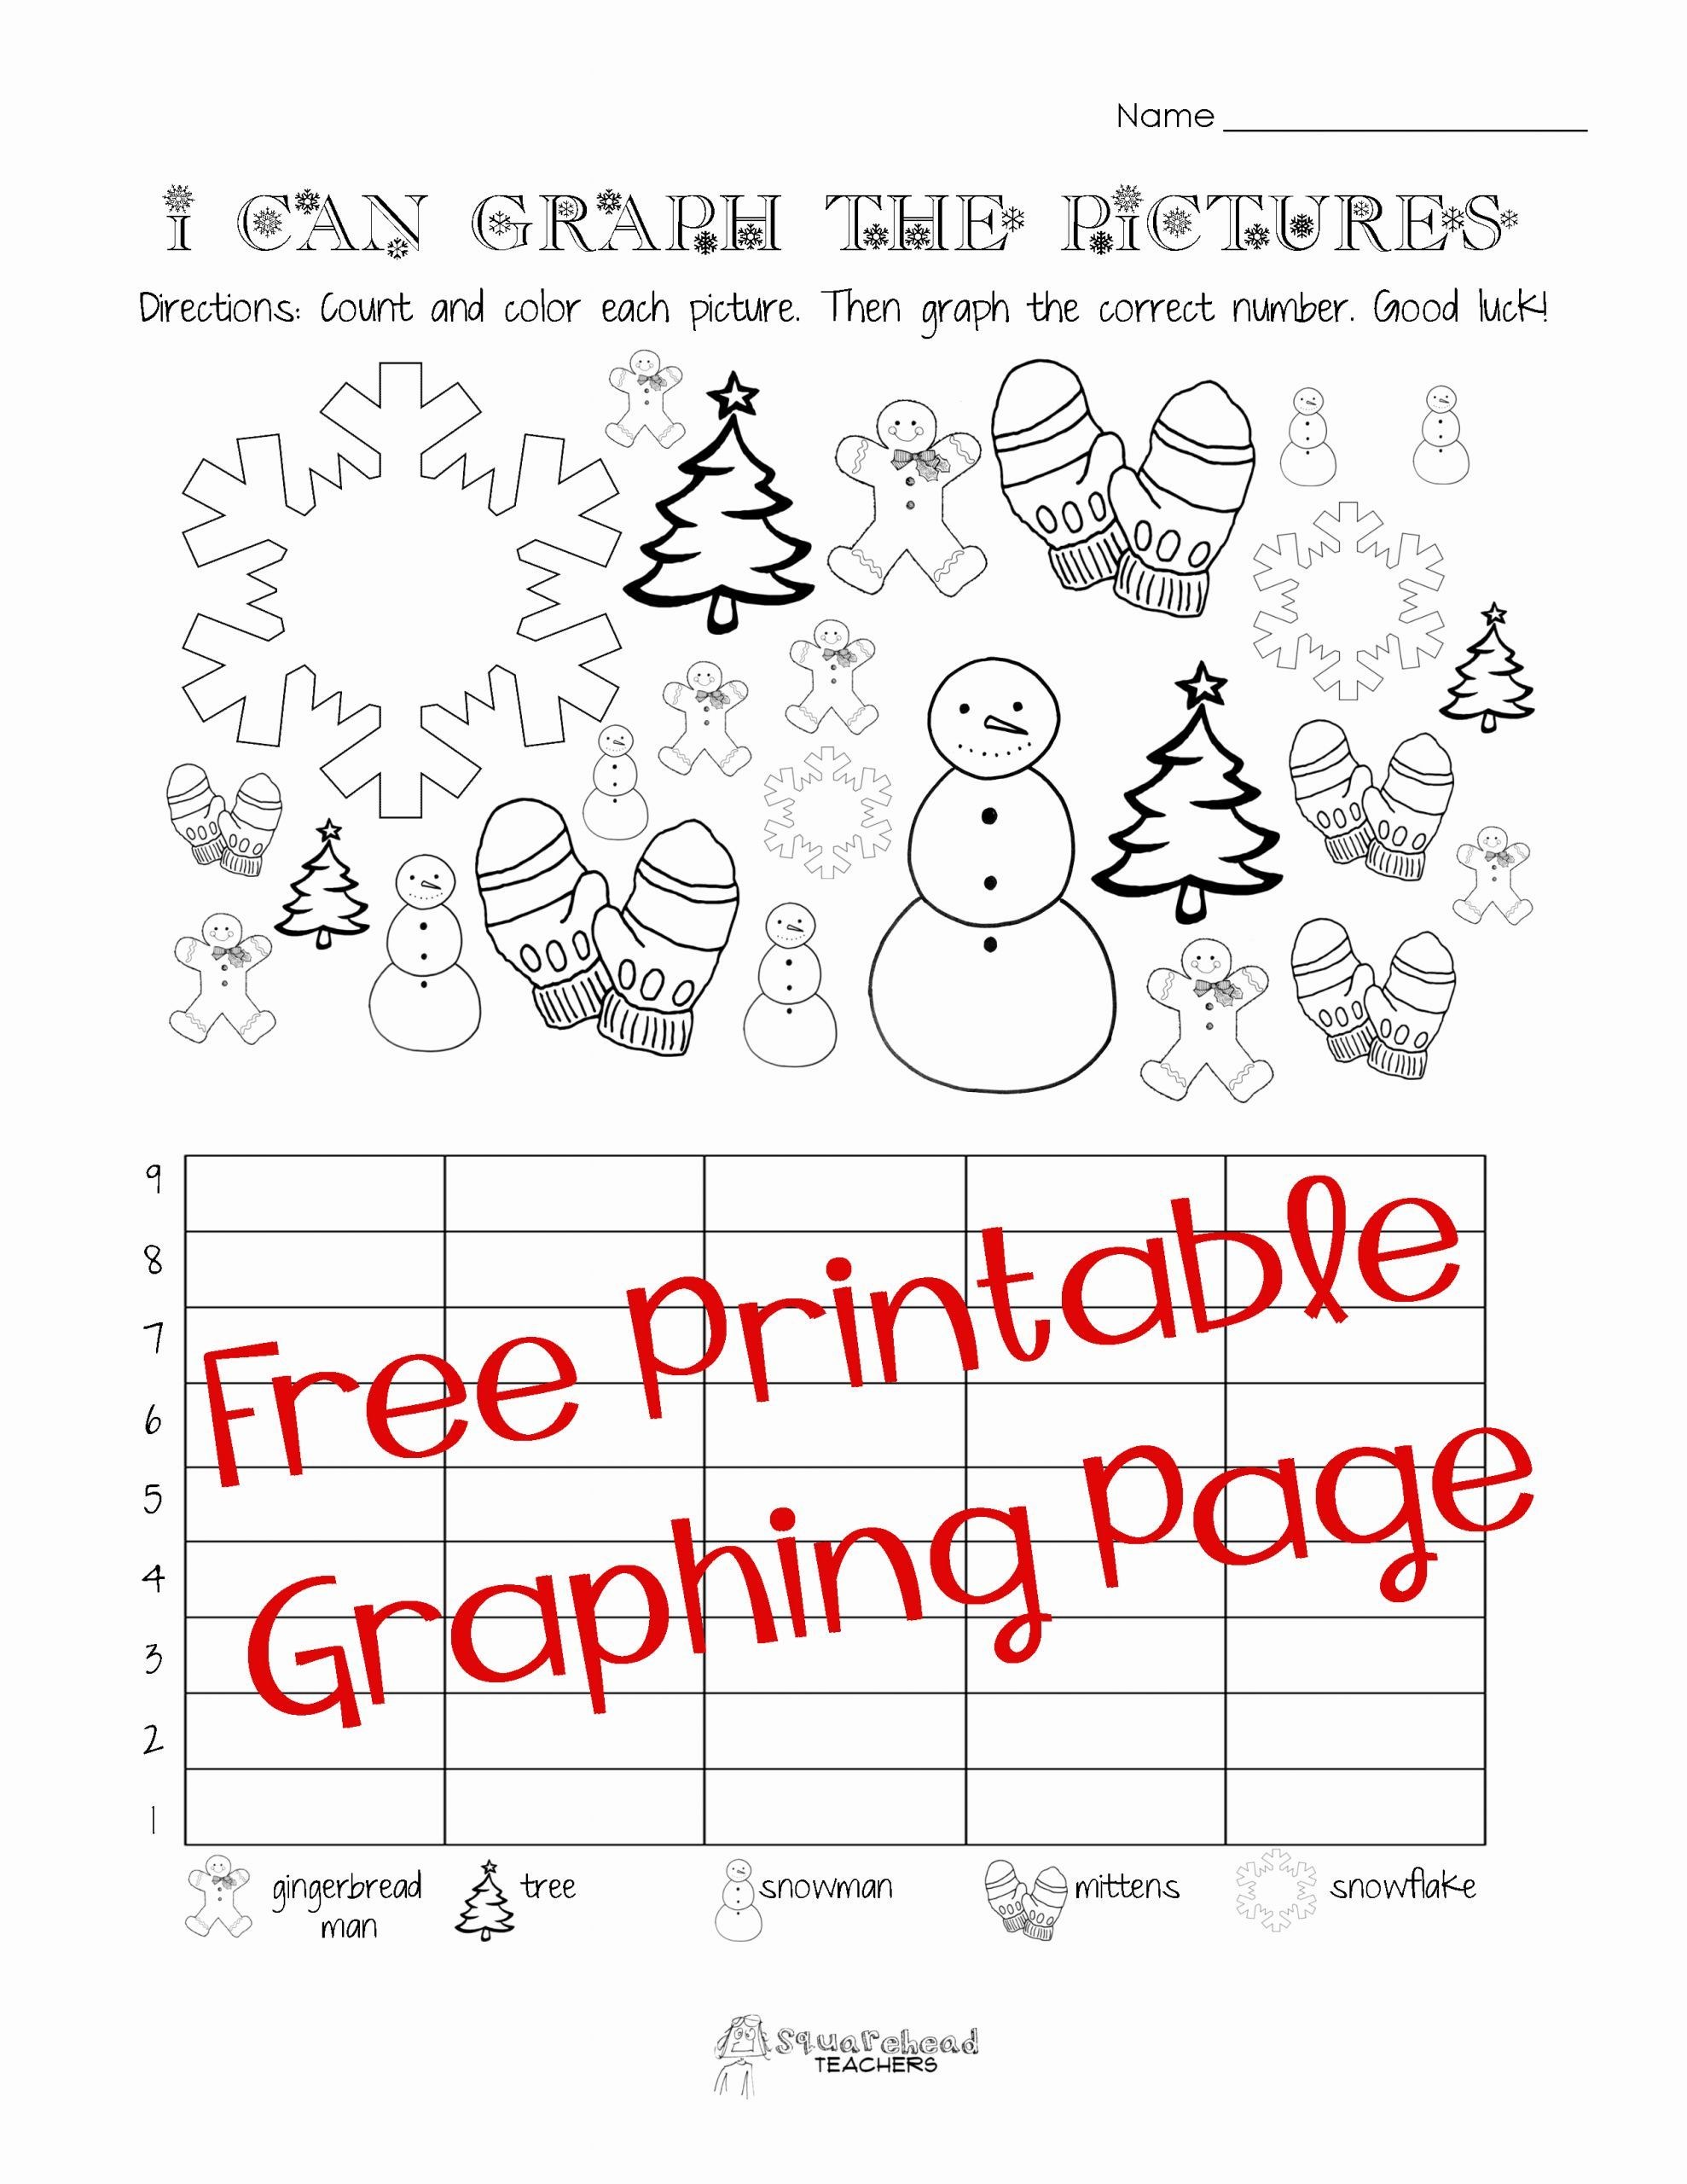 Graphing Worksheet Kindergarten Free In